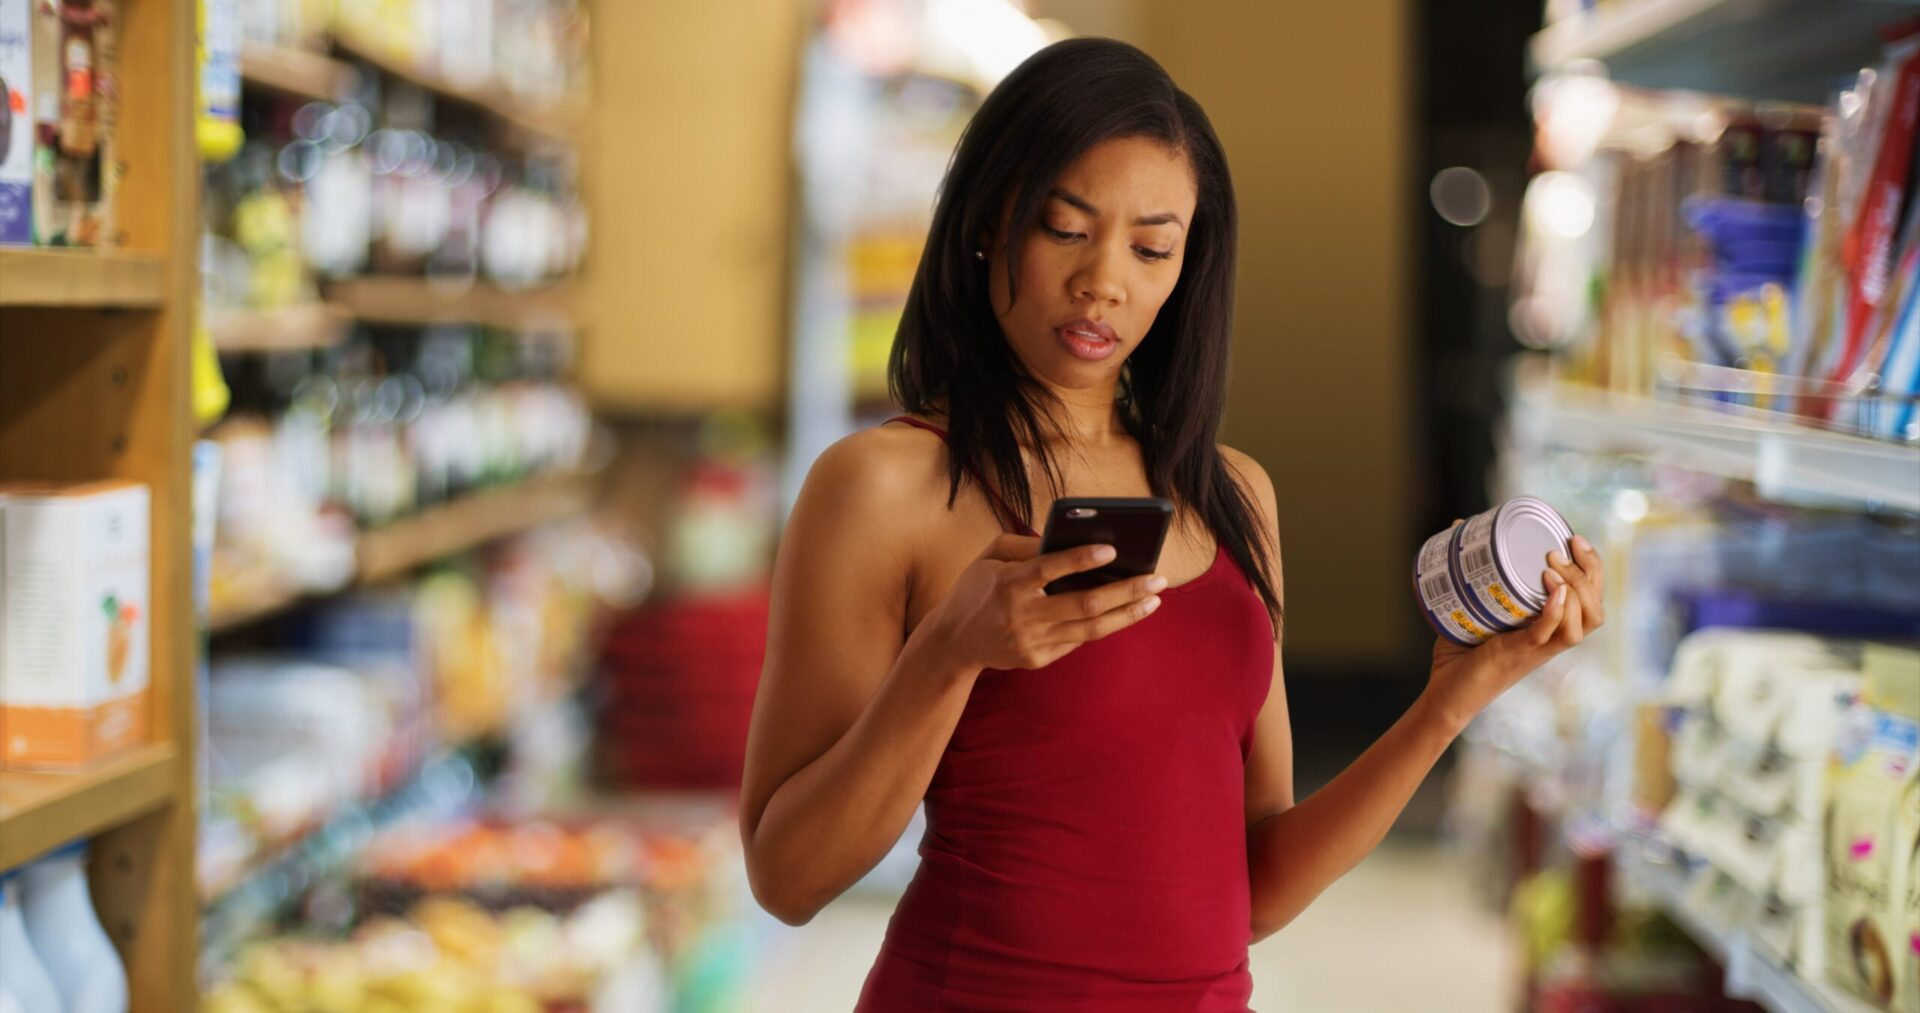 Black woman studies her phone at the grocery store